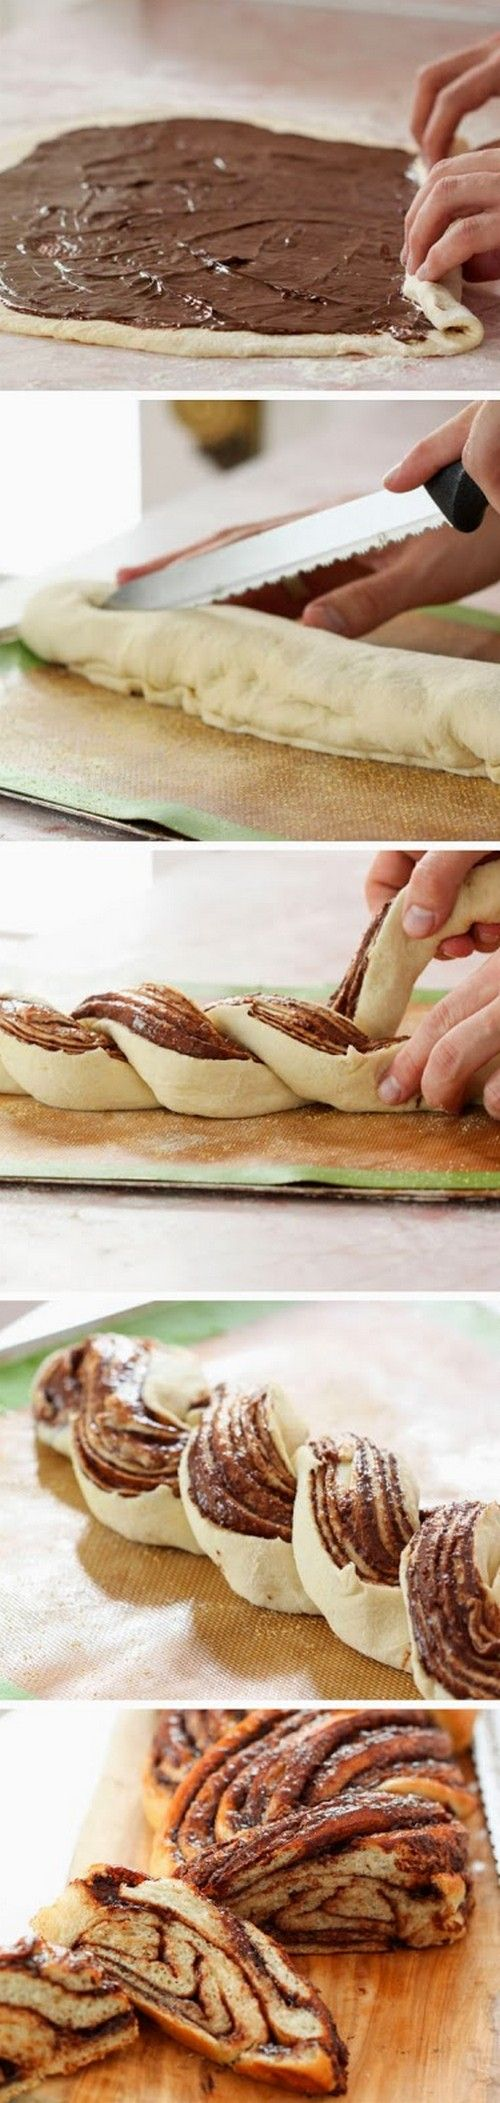 Braided Nutella Bread could also be done with cinnamon sugar and butter instead of Nutella